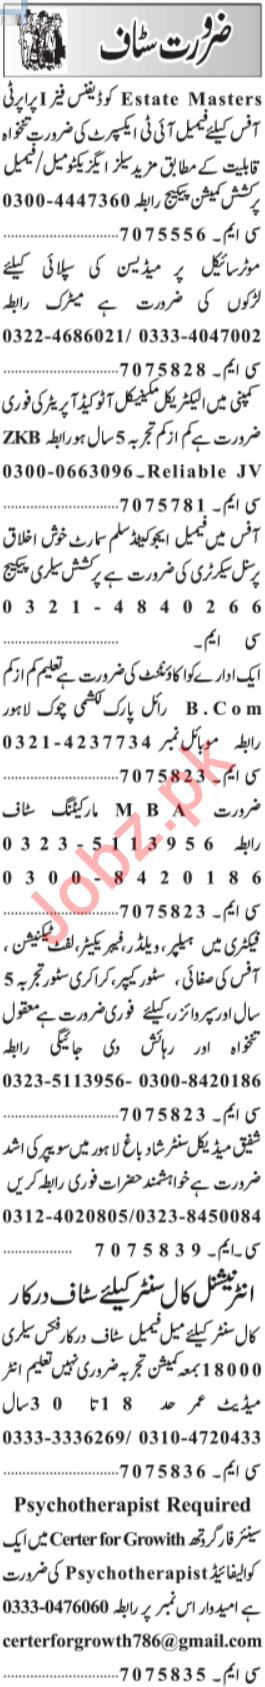 Daily Jang Newspaper Classified Ads In Lahore